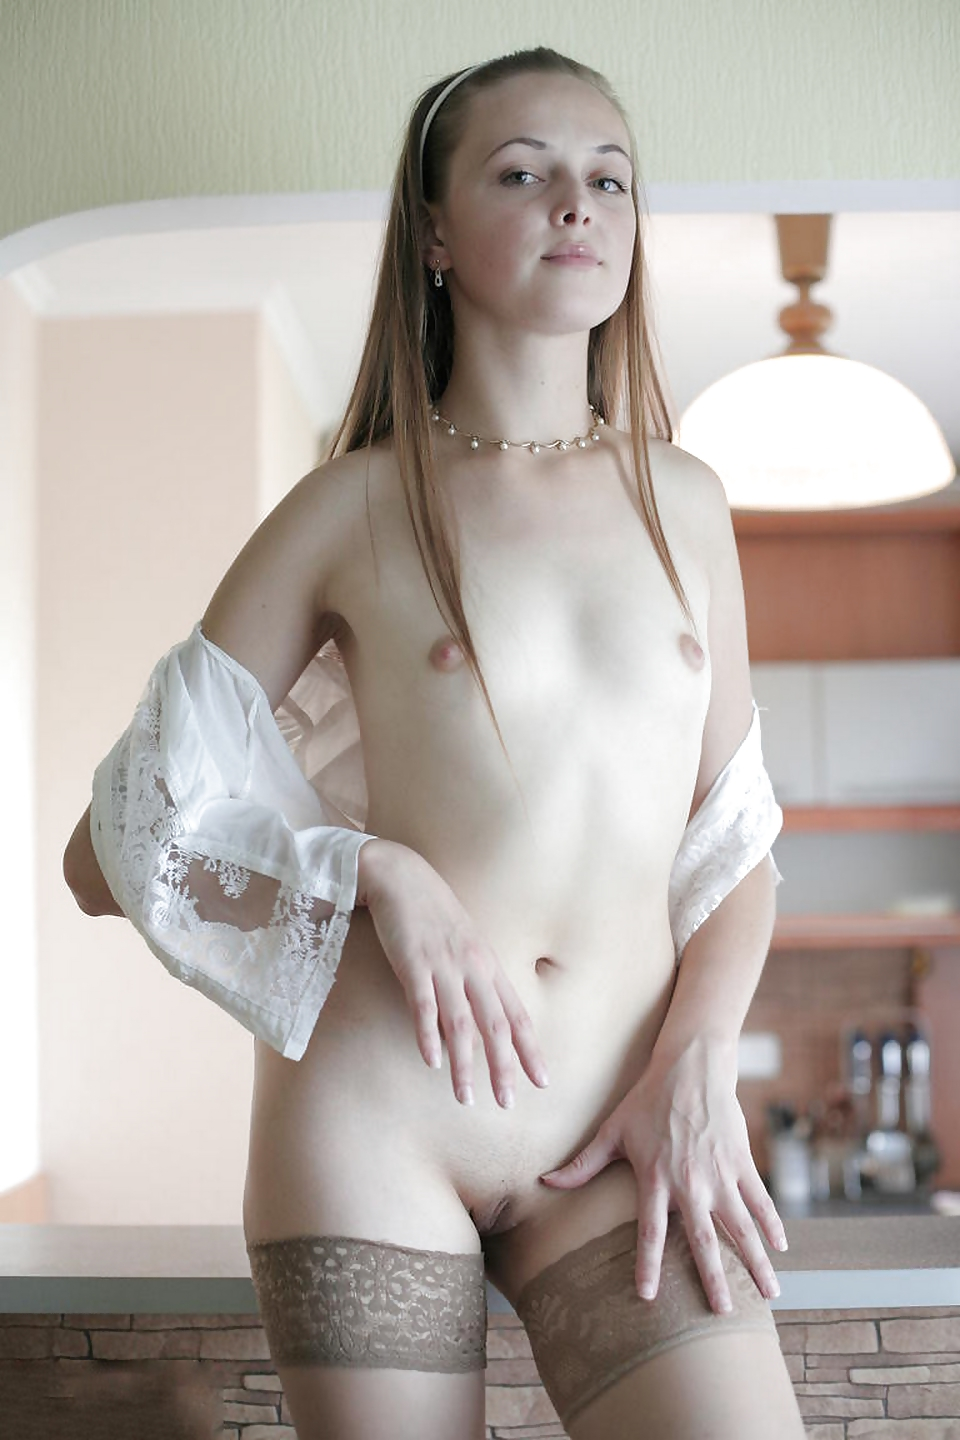 nude euro females photos